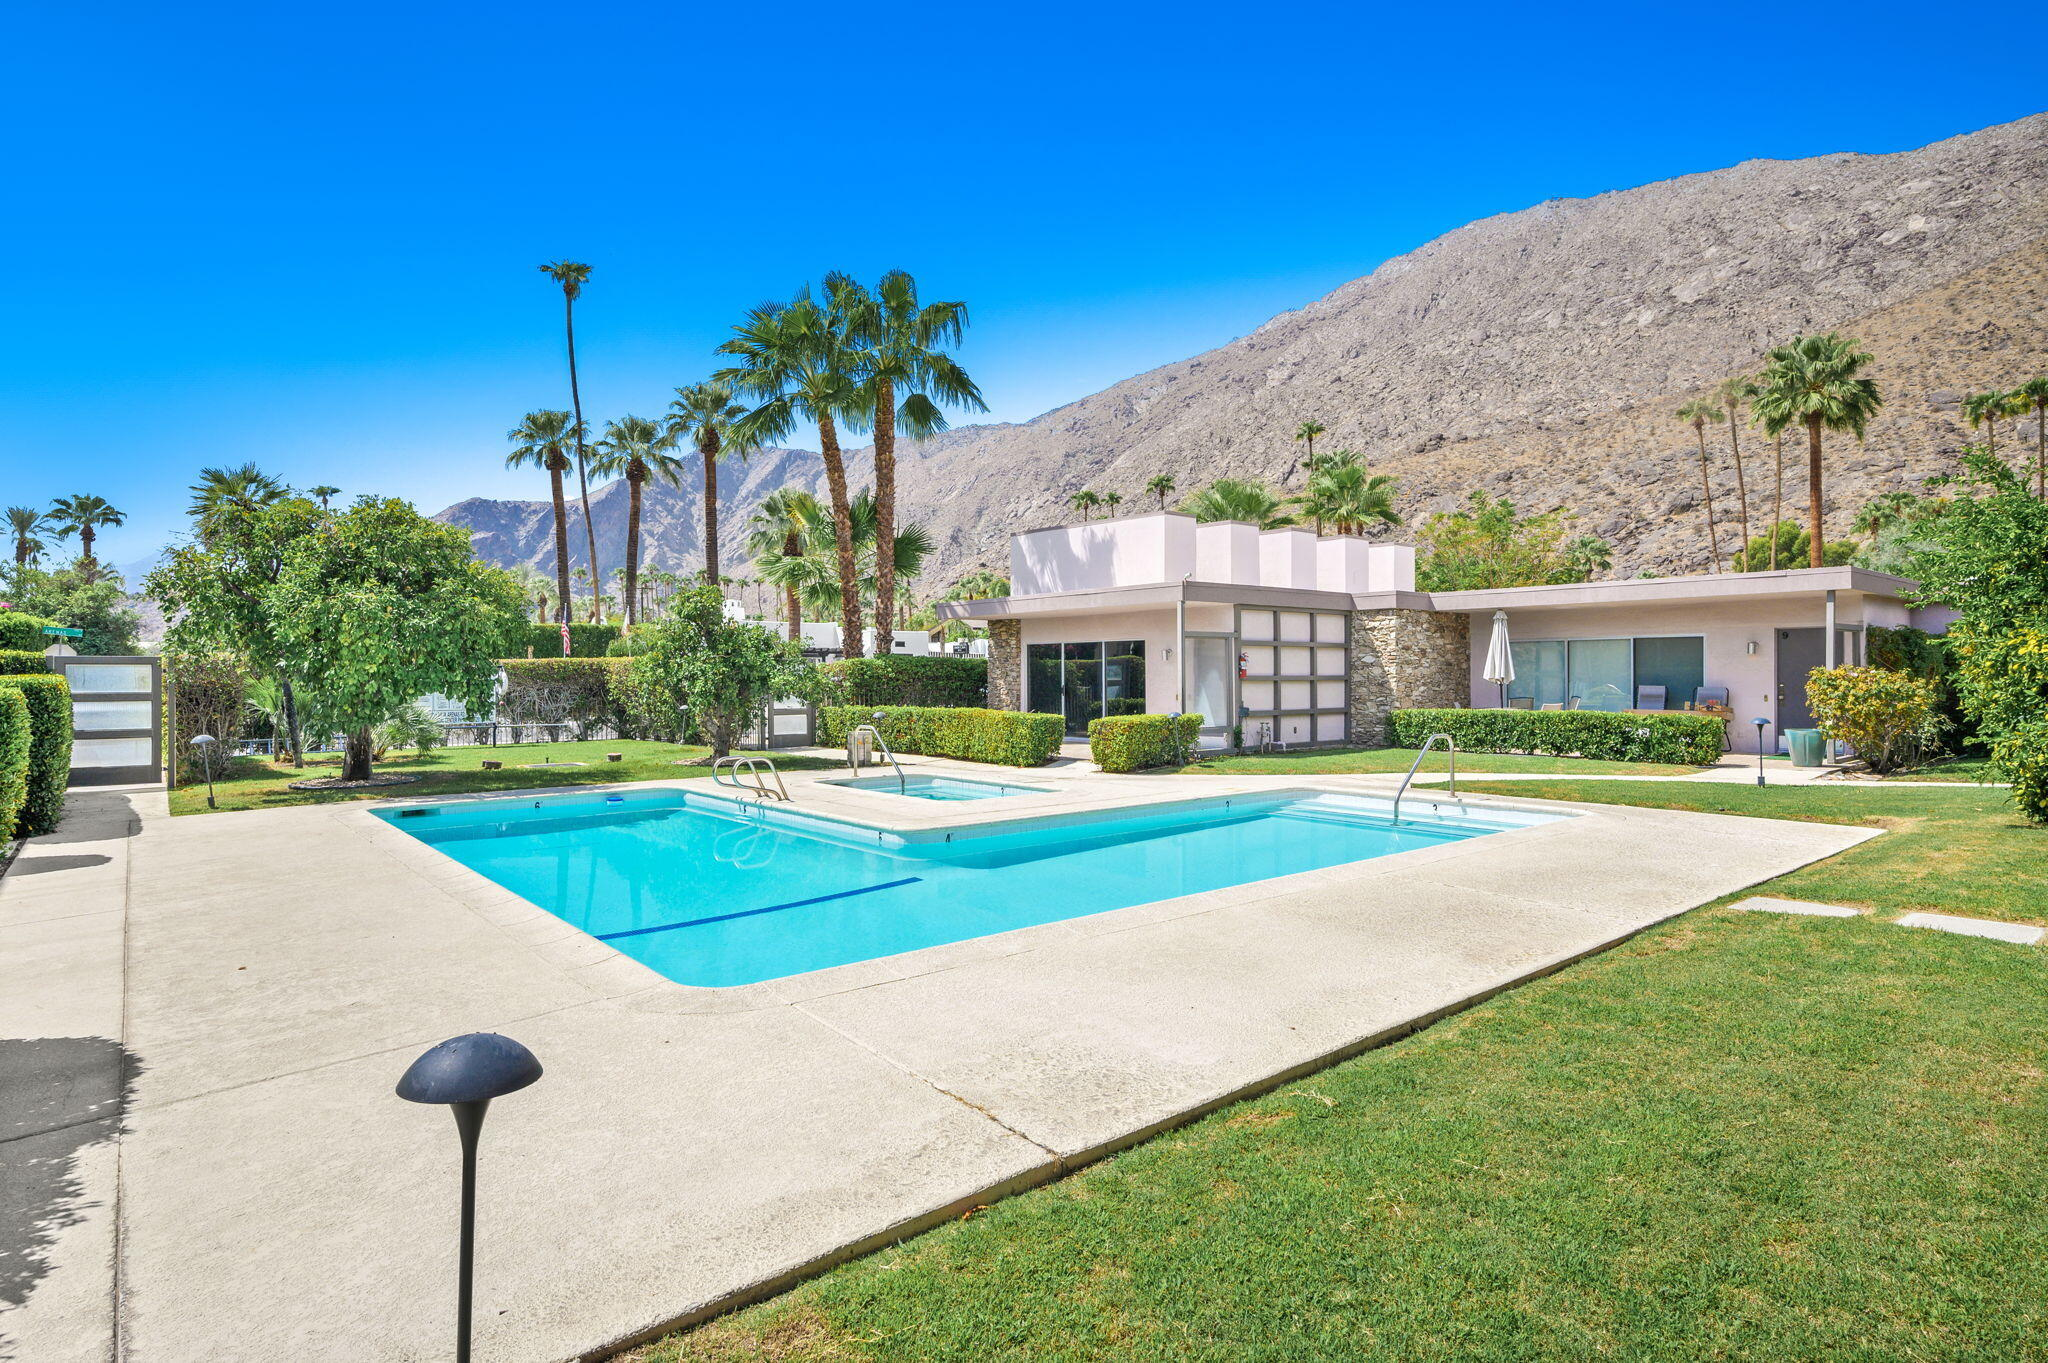 Bursting with relaxed Palm Springs style and set in an ideal location, there's plenty to love about this impressive residence. Natural light flows freely into the living room through the sliding glass doors. Designed with an open floor plan and dramatic architecture, this modern home offers a large bedroom with room for seating and a lovely bath with a walk-in shower. You'll enjoy a built-in bar, recessed lighting in the living room with direct access to the front patio overlooking the pool. The eat-in kitchen is bright and modern with stainless steel appliances and see-through cabinetry overhead.  Conveniently located on the ground floor and with no upstairs neighbors, you'll enjoy a quiet, peaceful lifestyle just steps from the community pool and spa. Beautifully manicured grounds encompass the building with plenty of off-street parking and desert mountain views for your pleasure. Set in an unbeatable location close to Palm Springs golf, shopping, dining, and nightlife, everything you could ever ask for awaits in this move-in ready home. Come take a tour before it's gone for good!